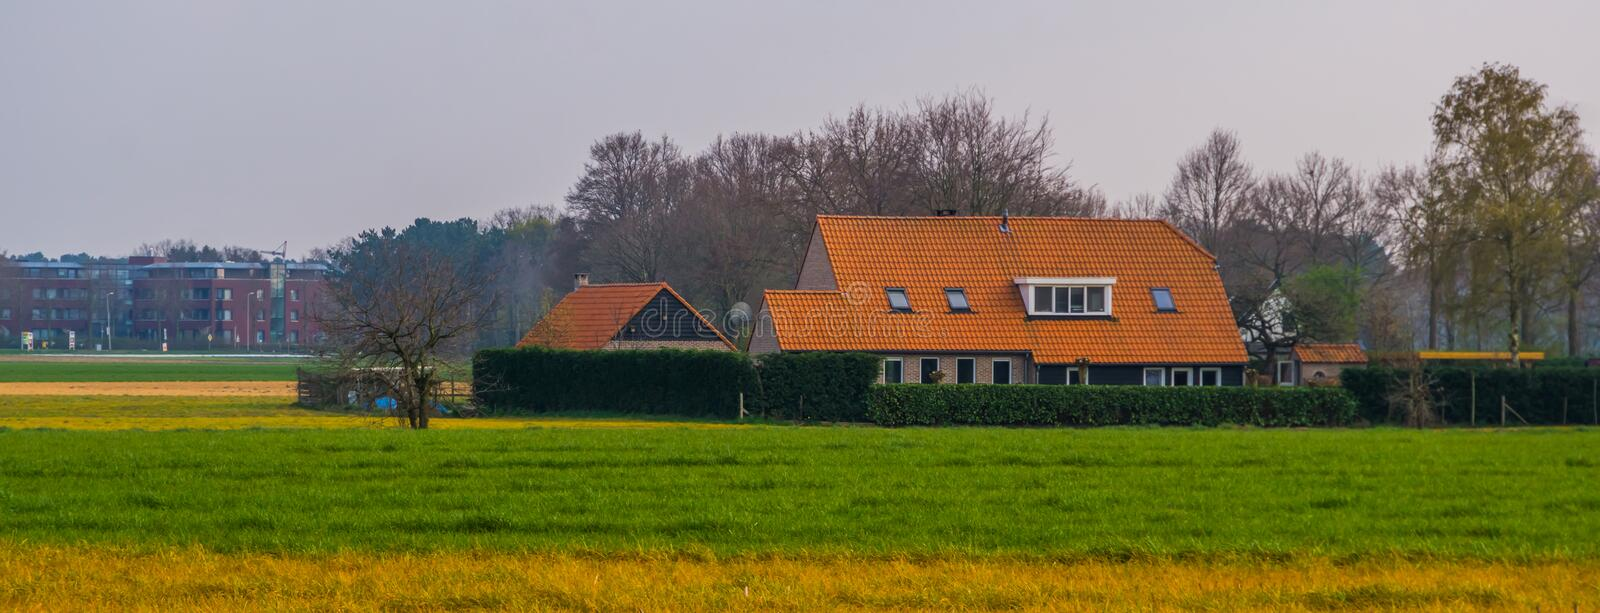 Big farmers house at the countryside, typical dutch architecture. A big farmers house at the countryside, typical dutch architecture stock photos